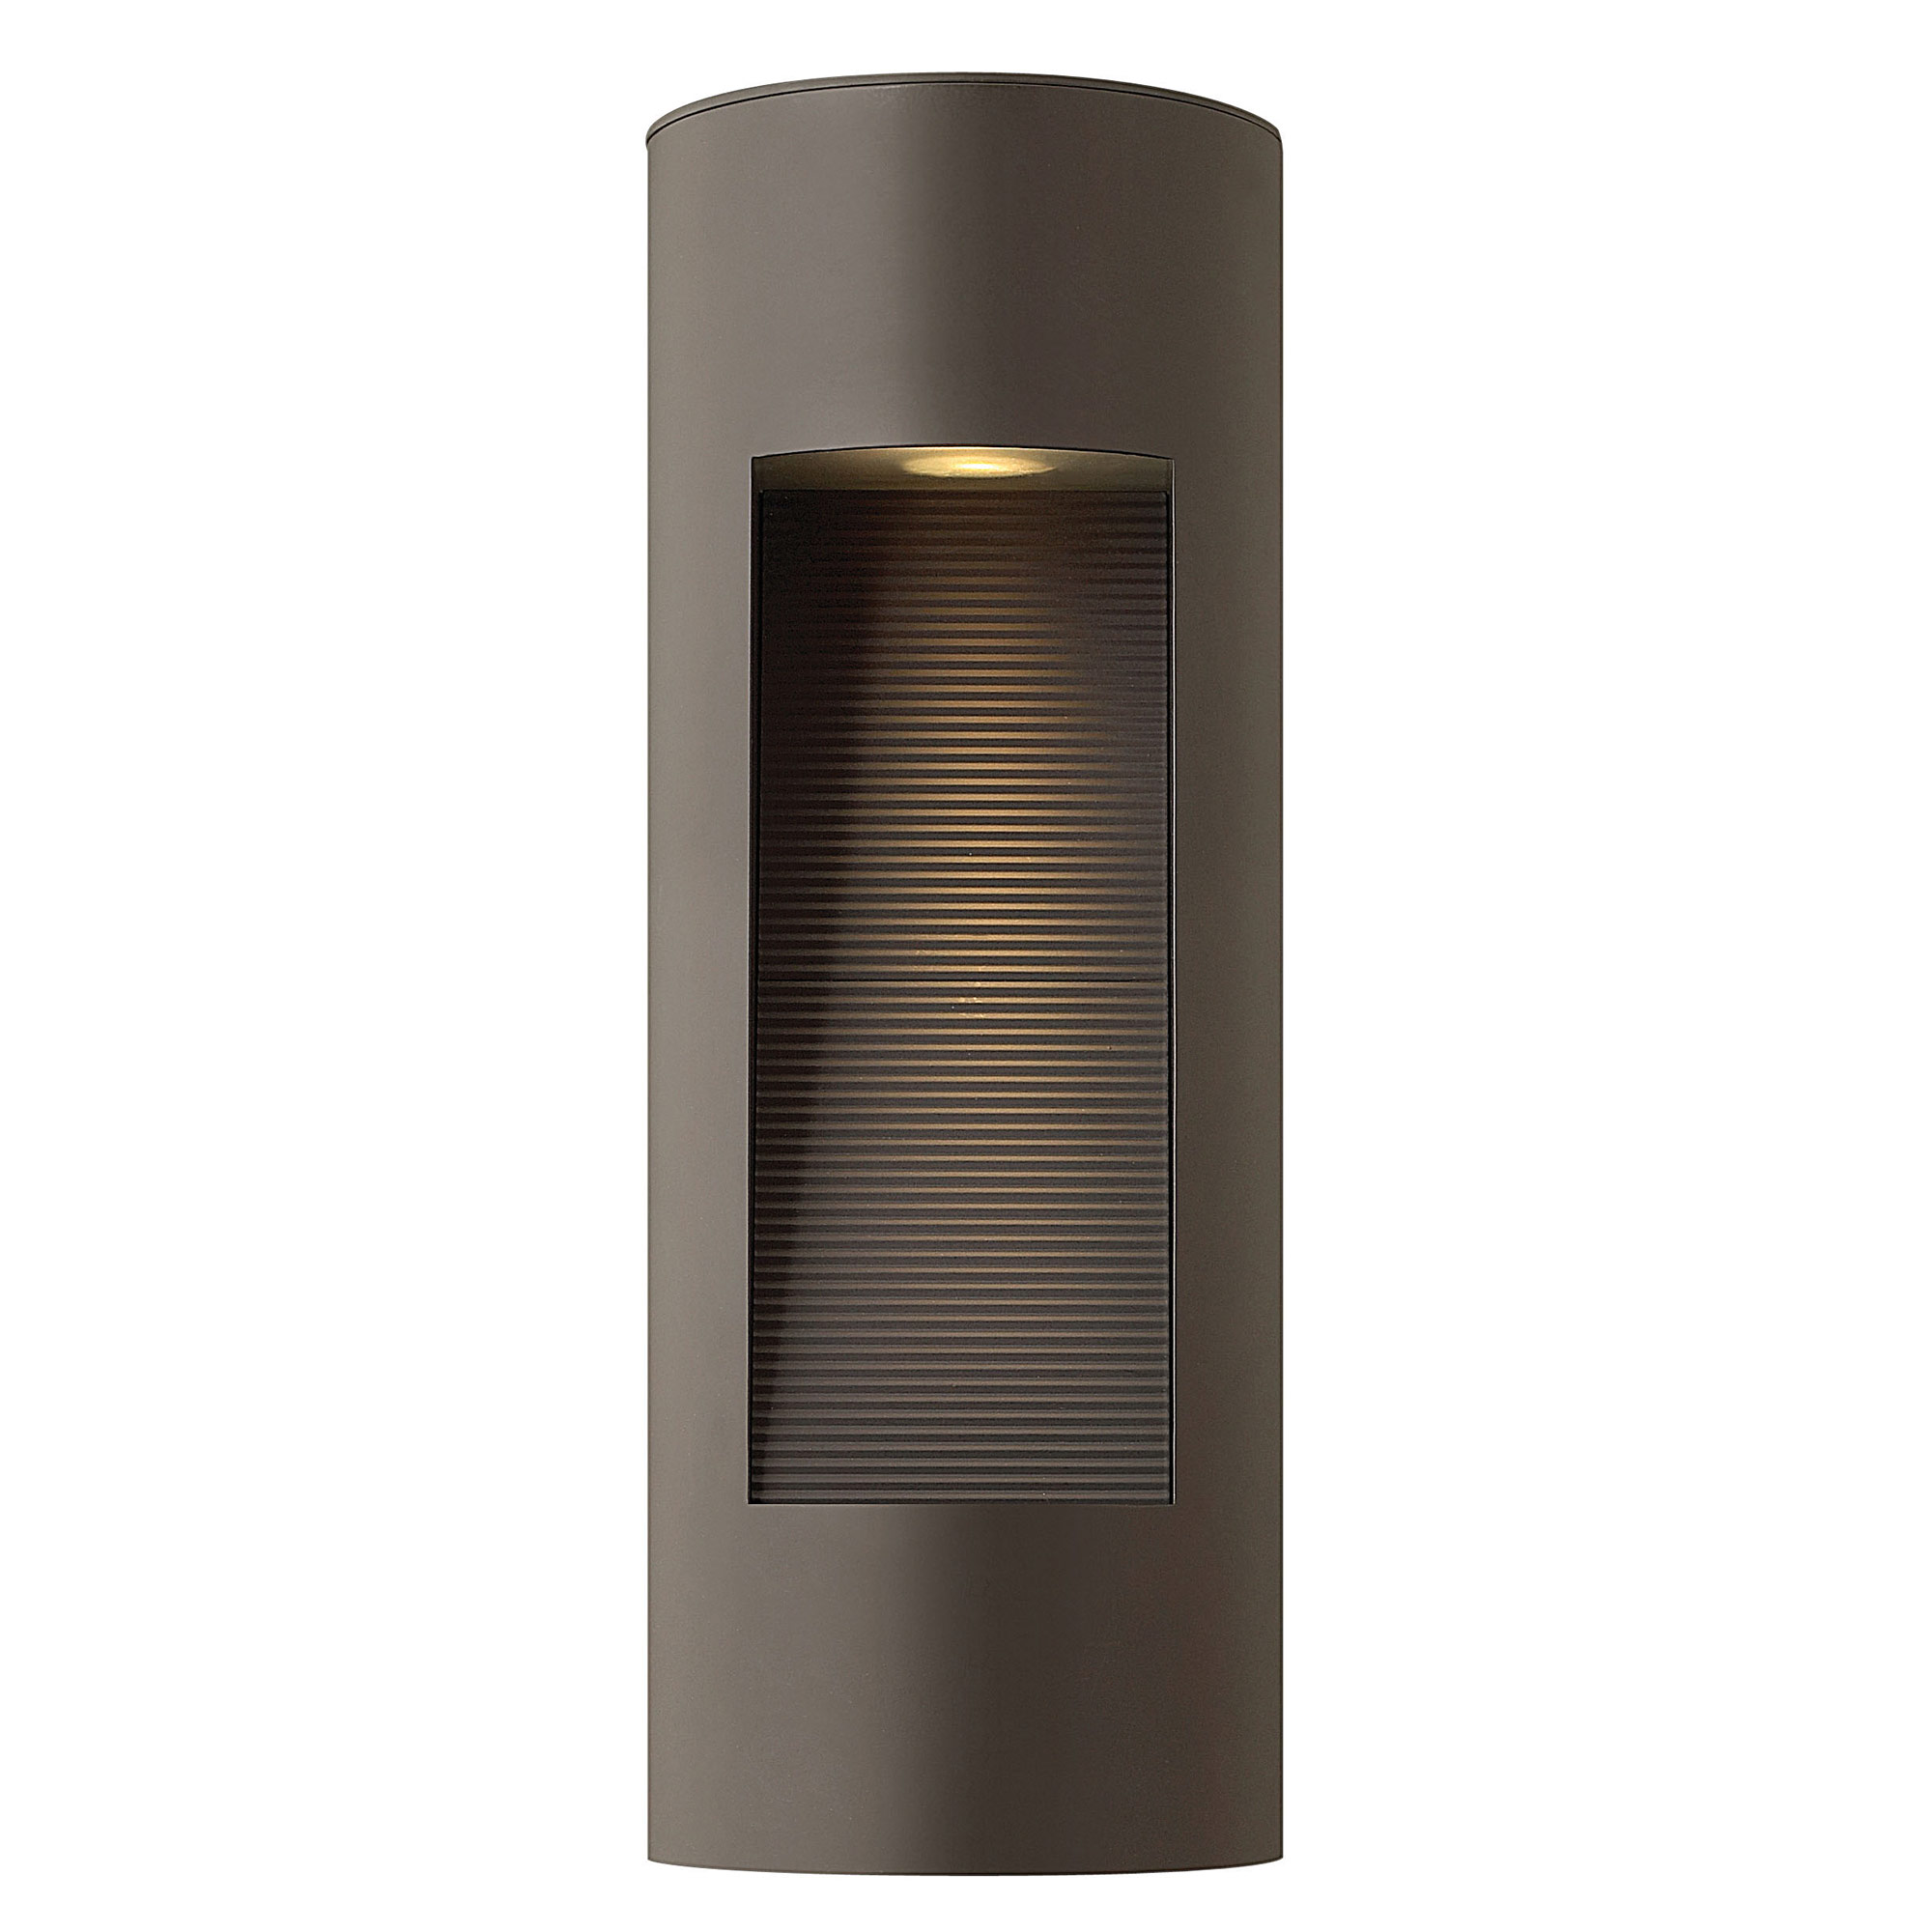 Luna Rectangular Outdoor Wall Sconce by Hinkley Lighting 1660BZ-LED